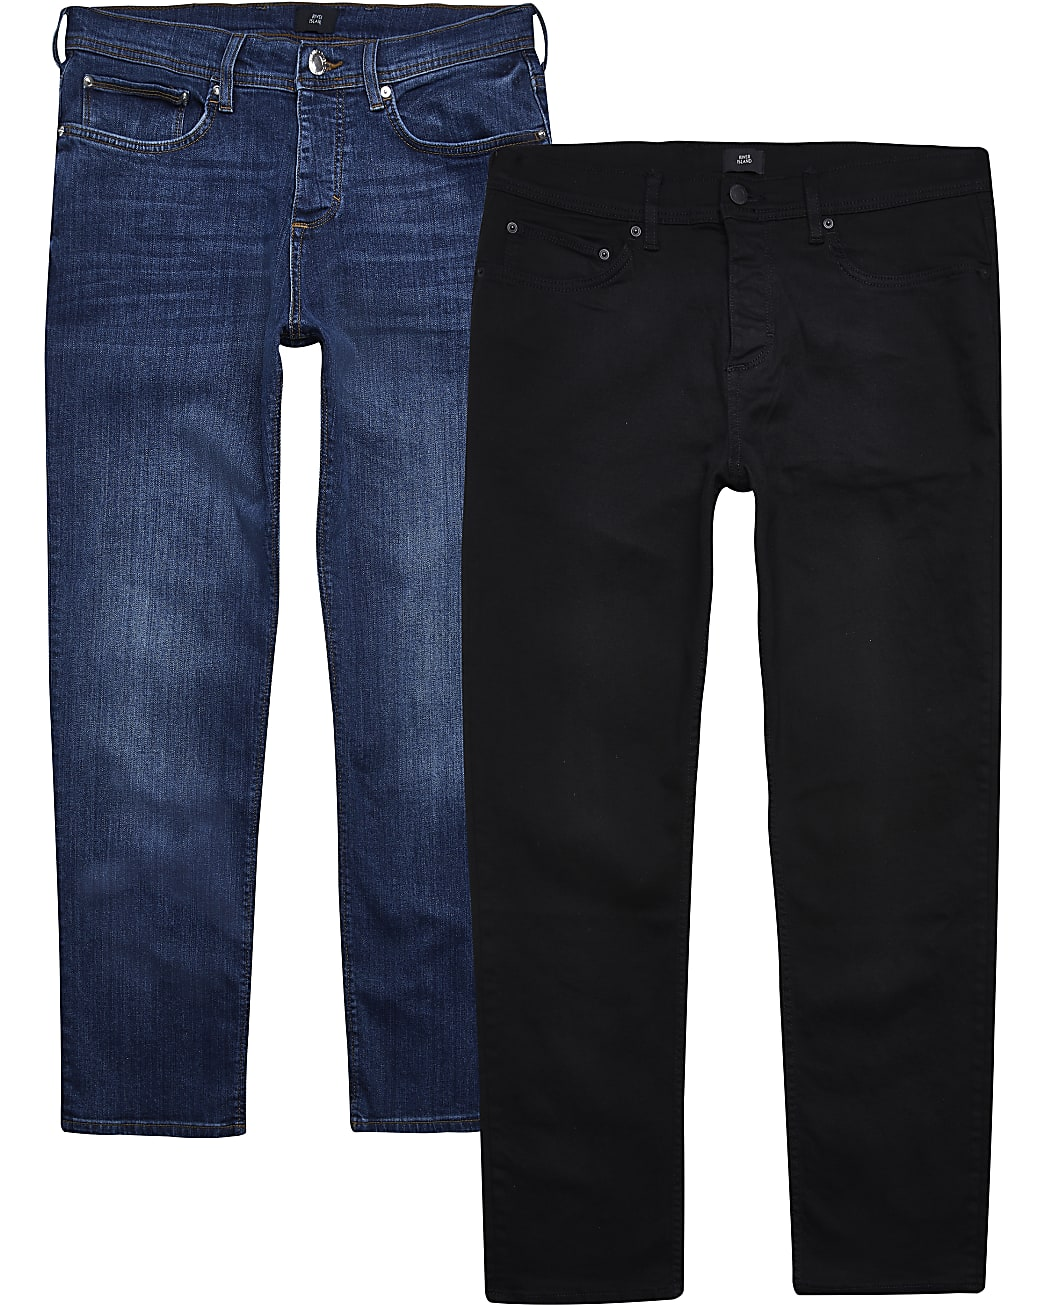 Black & blue straight fit jeans multipack